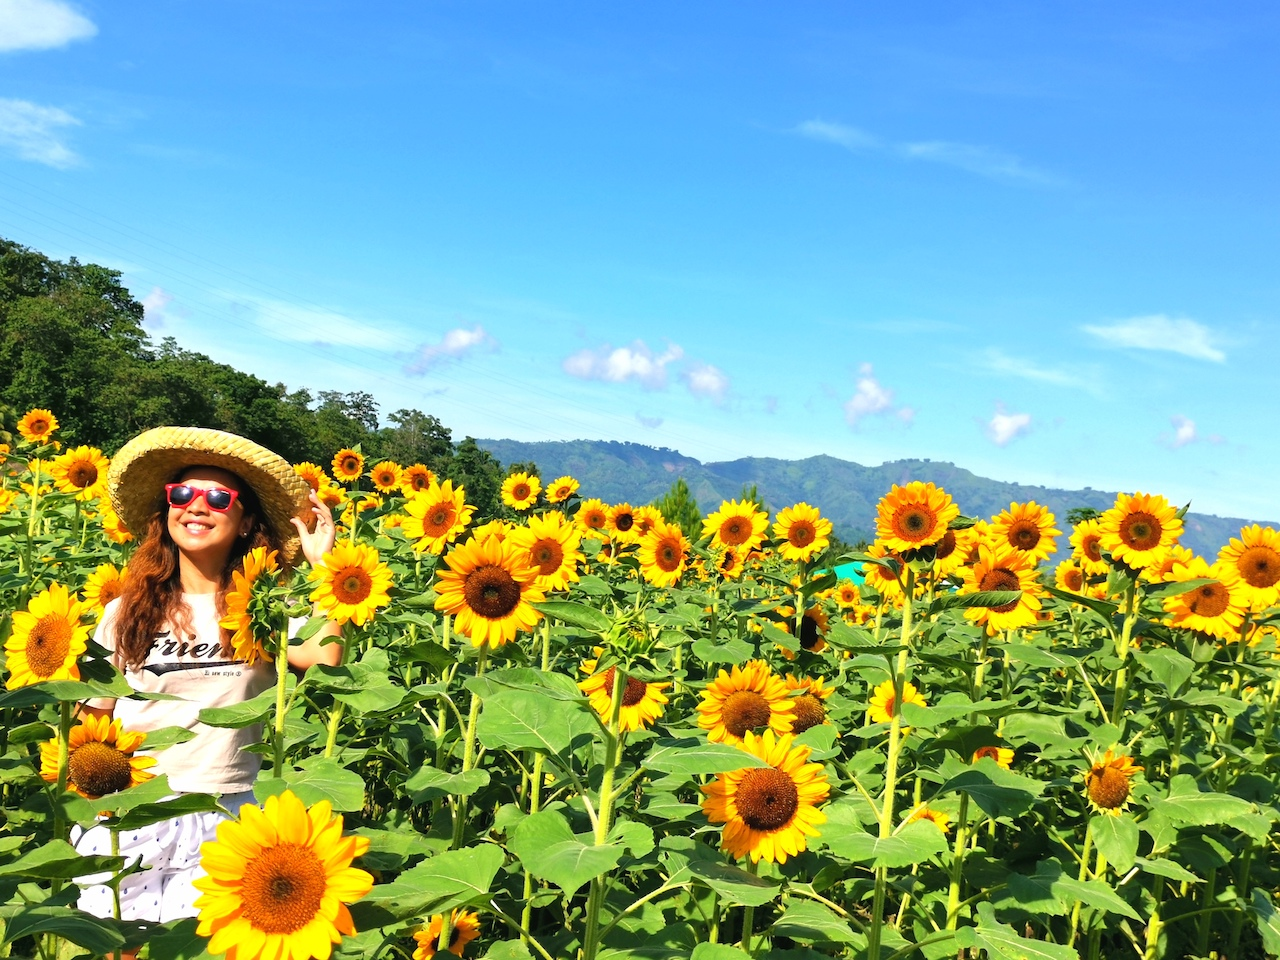 Marirano's Blooming park-sunflower garden-Tupi-South Cotabato